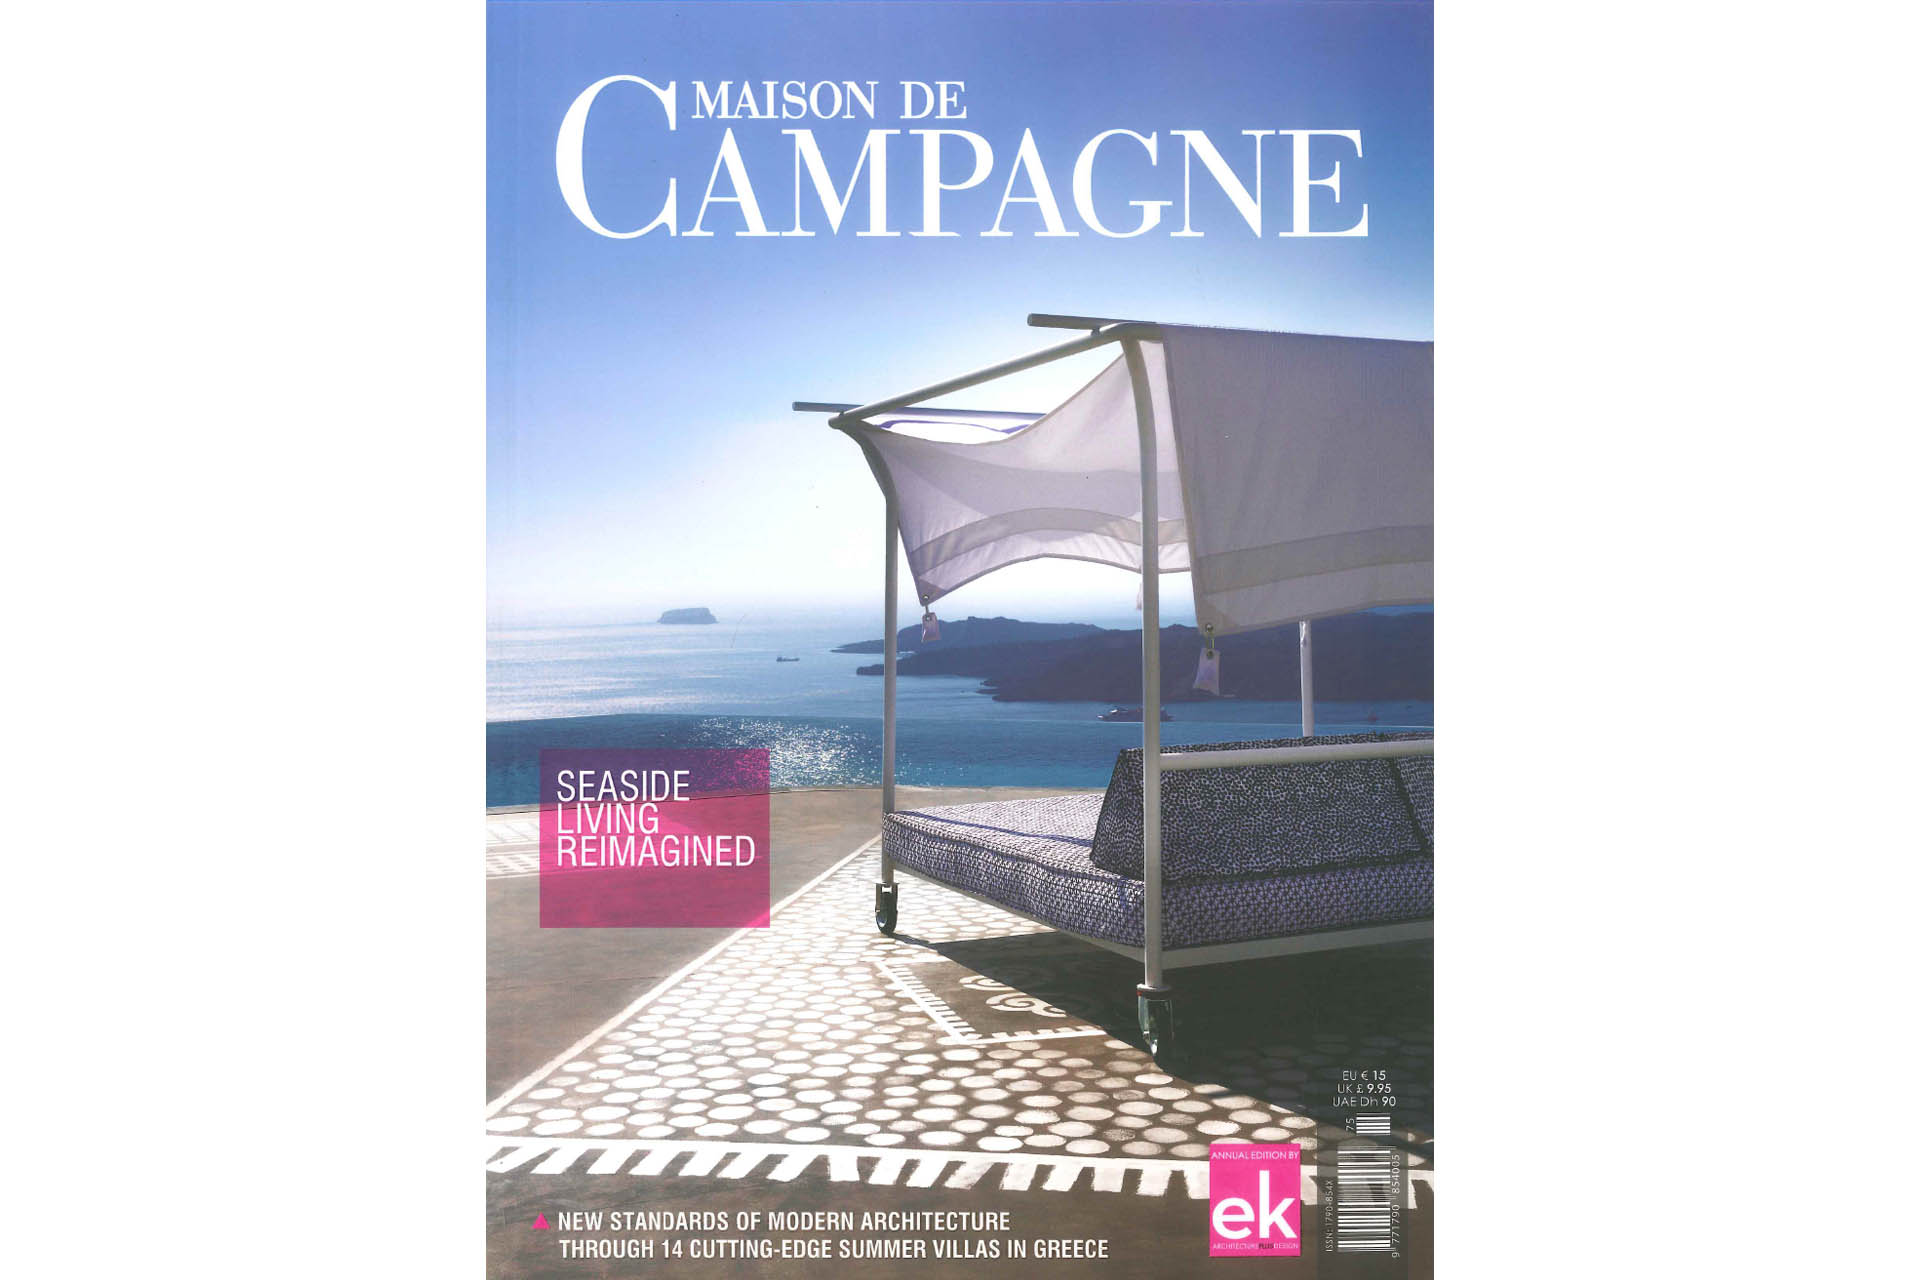 louisa 39 s image on the cover of maison de champagne 2017 magazine louisa nikolaidou. Black Bedroom Furniture Sets. Home Design Ideas